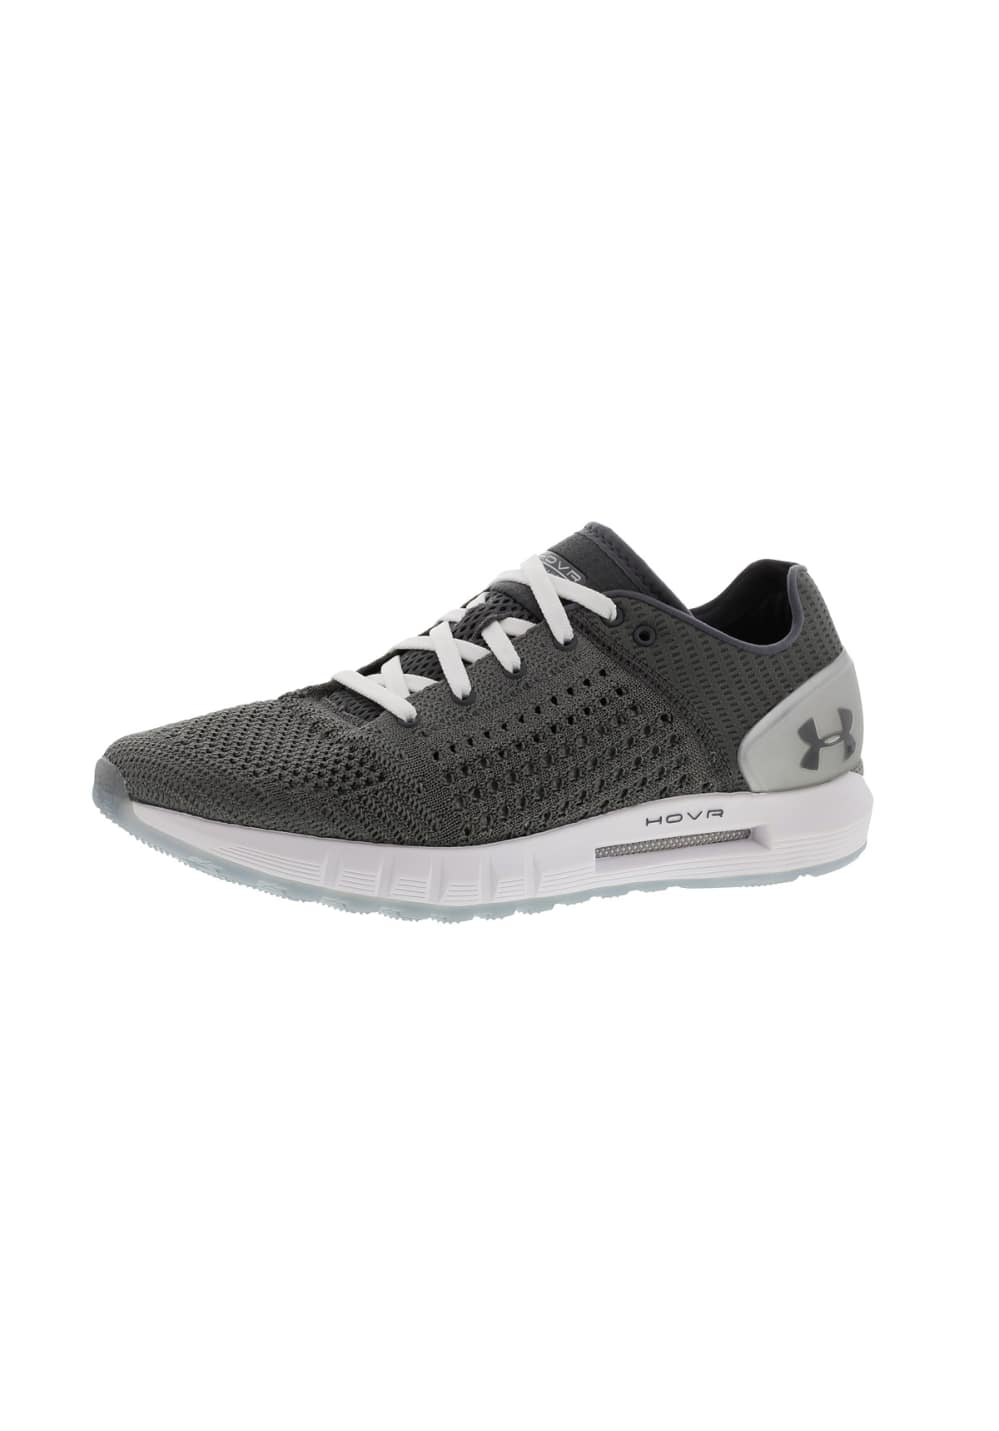 newest d98de c75ee Under Armour Hovr Sonic Nc - Running shoes for Women - Grey